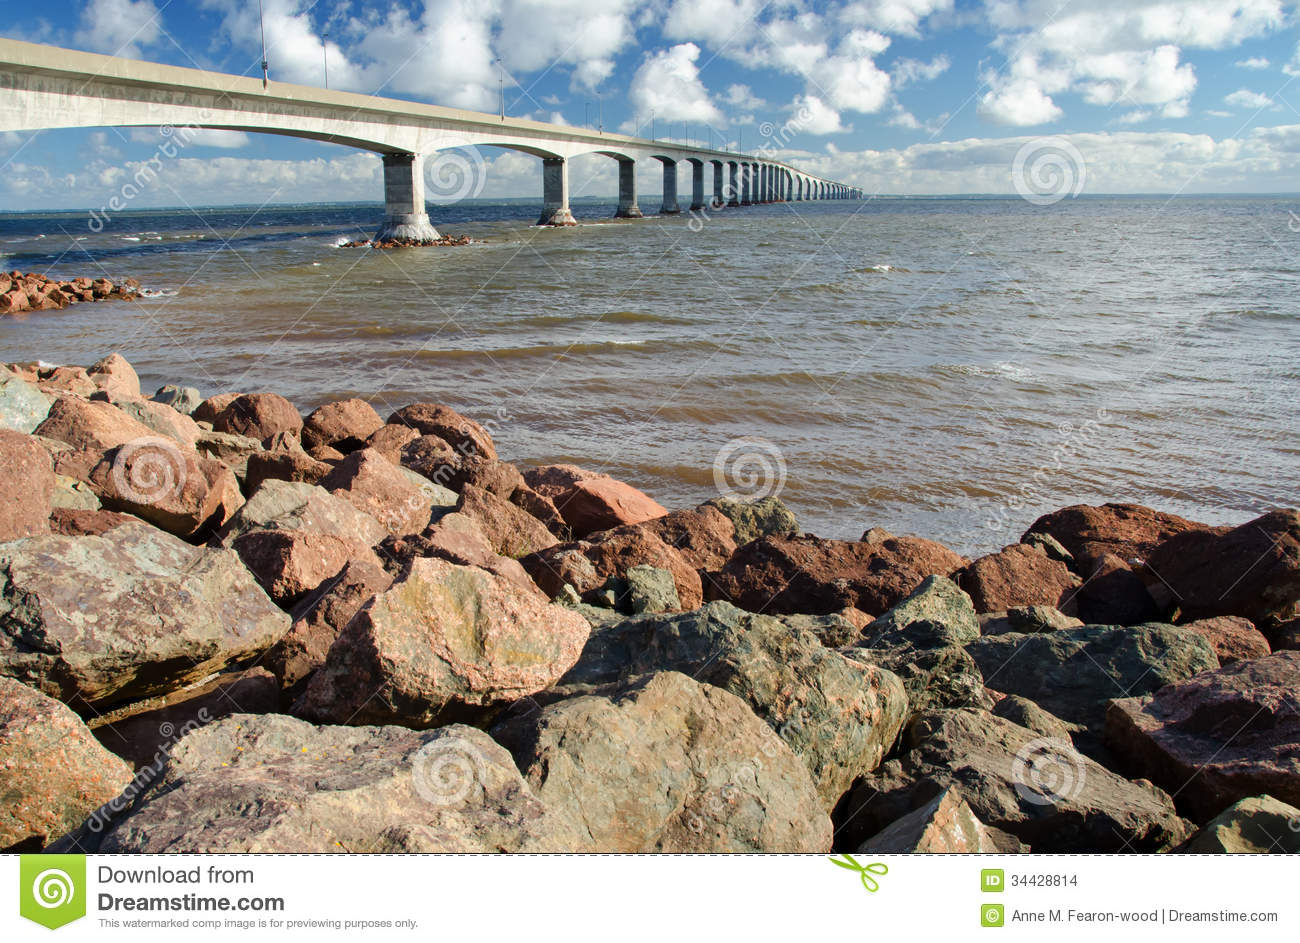 Confederation bridge connecting new brunswick to prince edward island